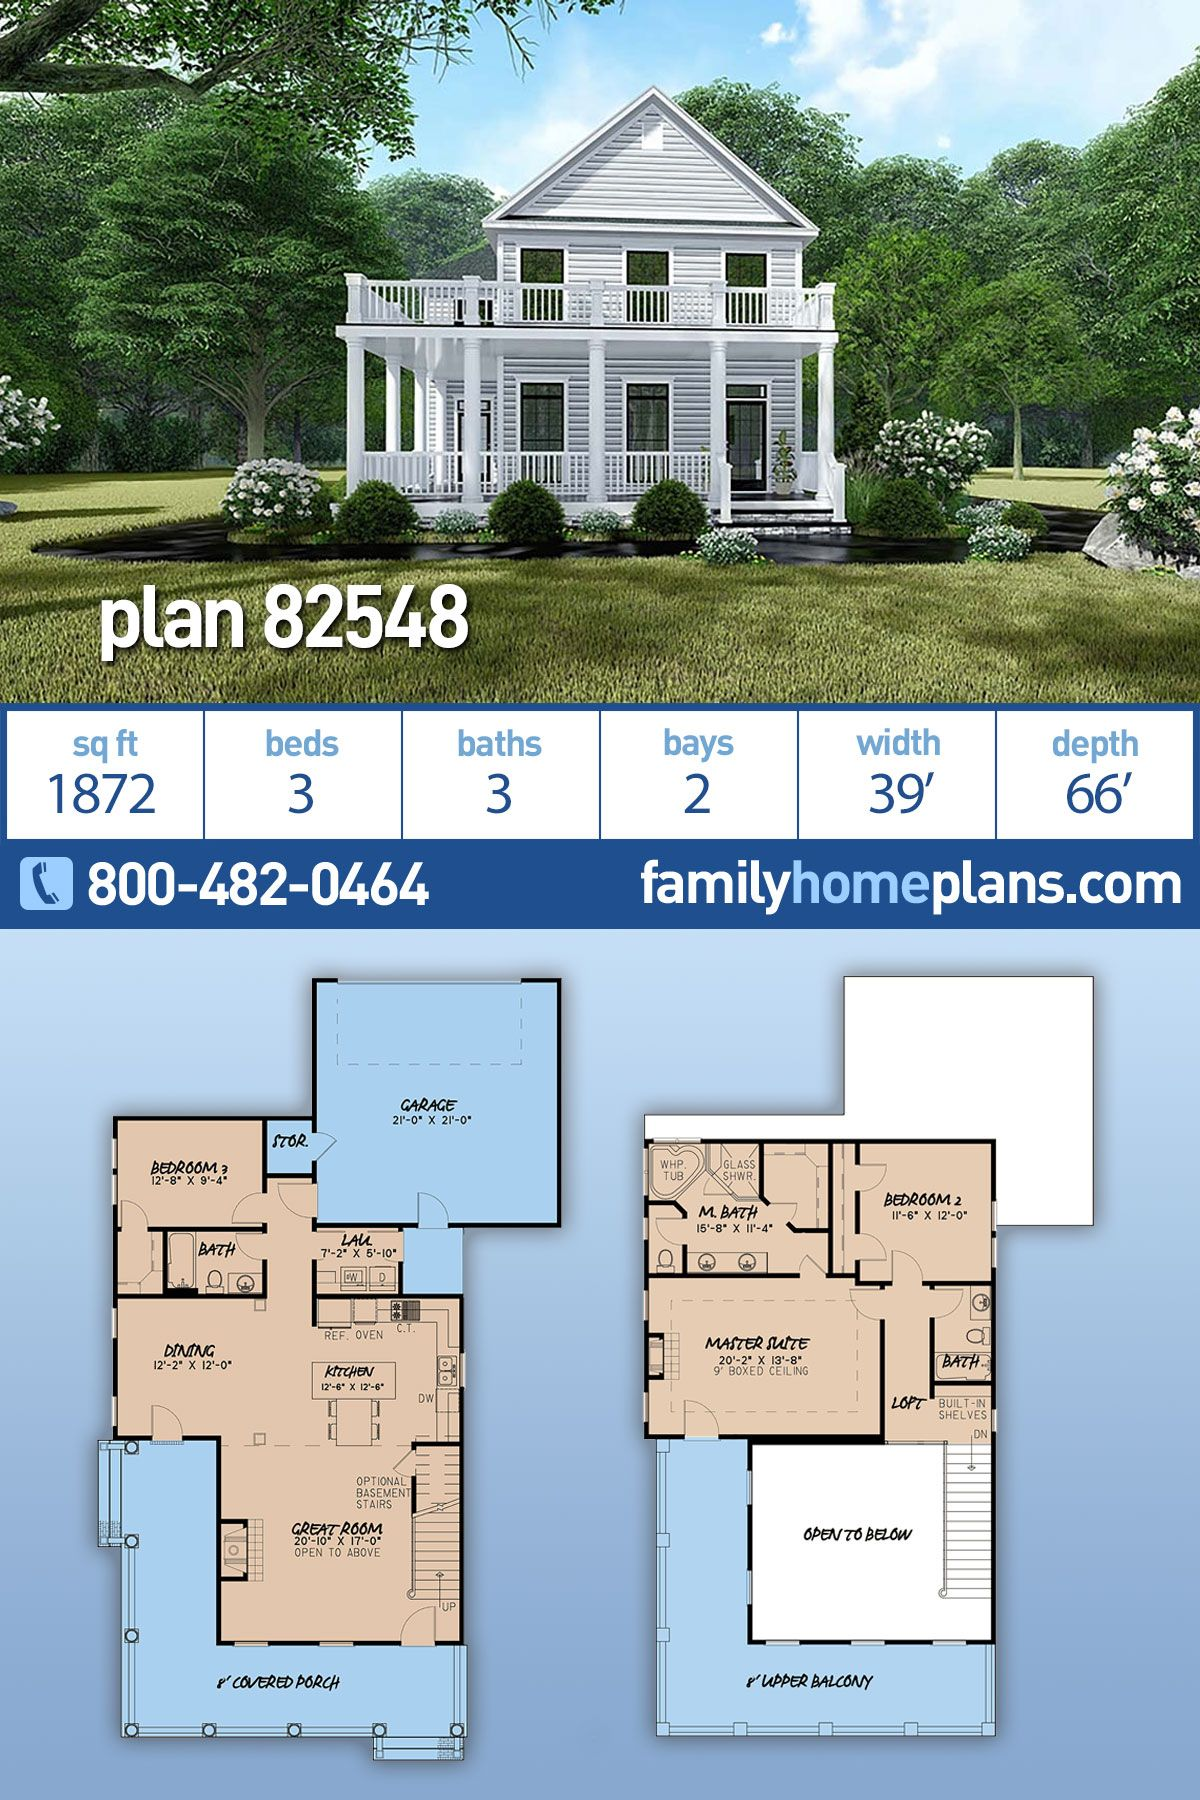 Farmhouse Style House Plan 82548 With 3 Bed 3 Bath 2 Car Garage Farmhouse Style House Farmhouse Style House Plans Two Story House Design